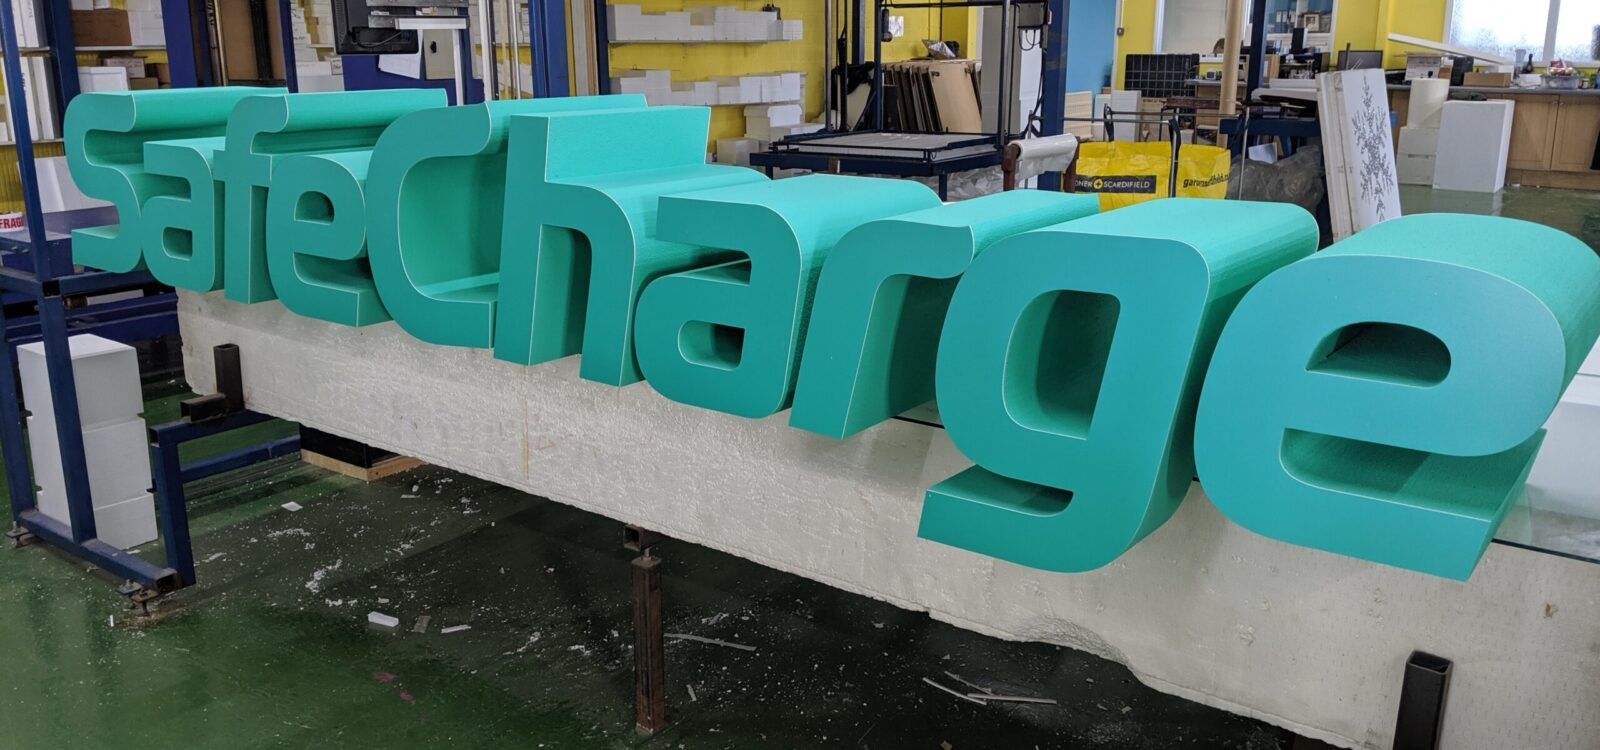 Polystyrene Safecharge Logo For An Exhibition